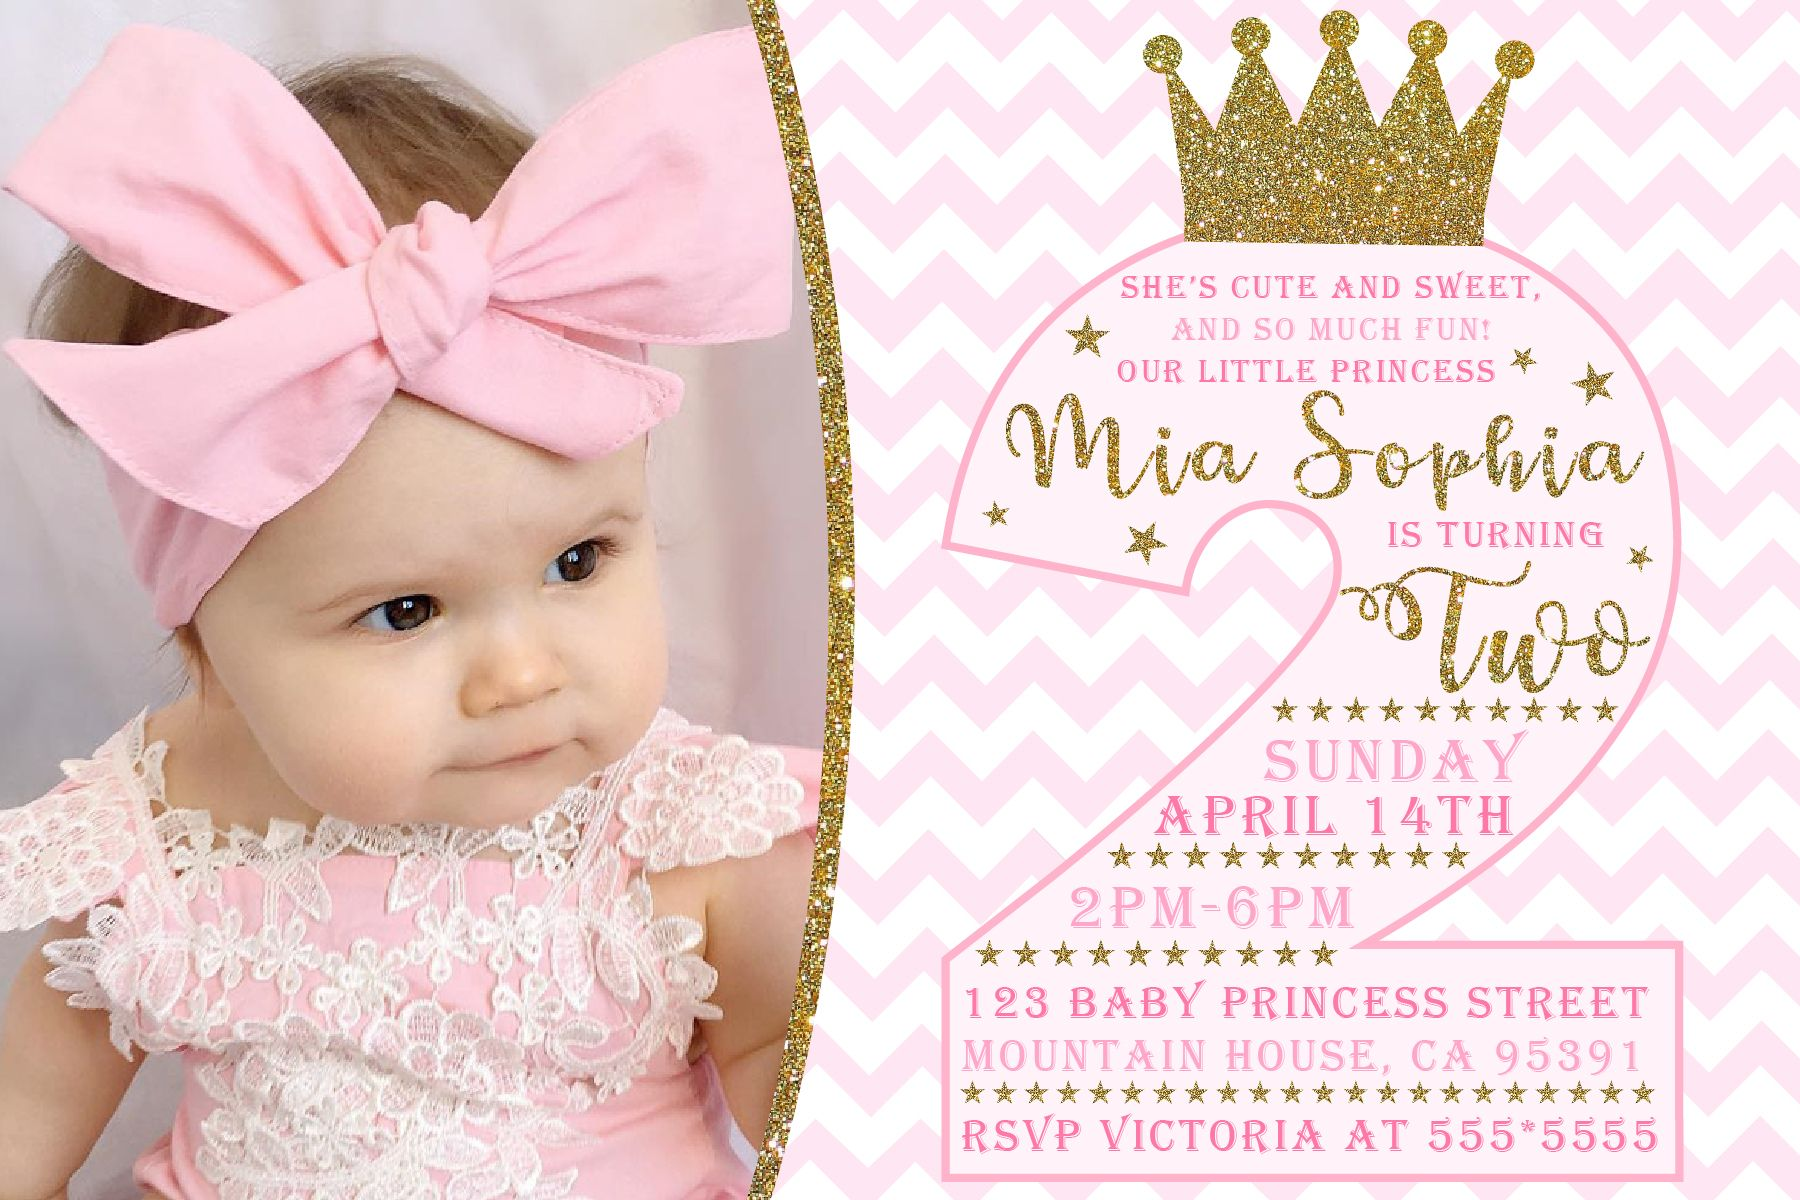 Princess Second Birthday Invitation Thank You Card Included Printable Digital With Picture Bestgraphicsonline Printableinvite